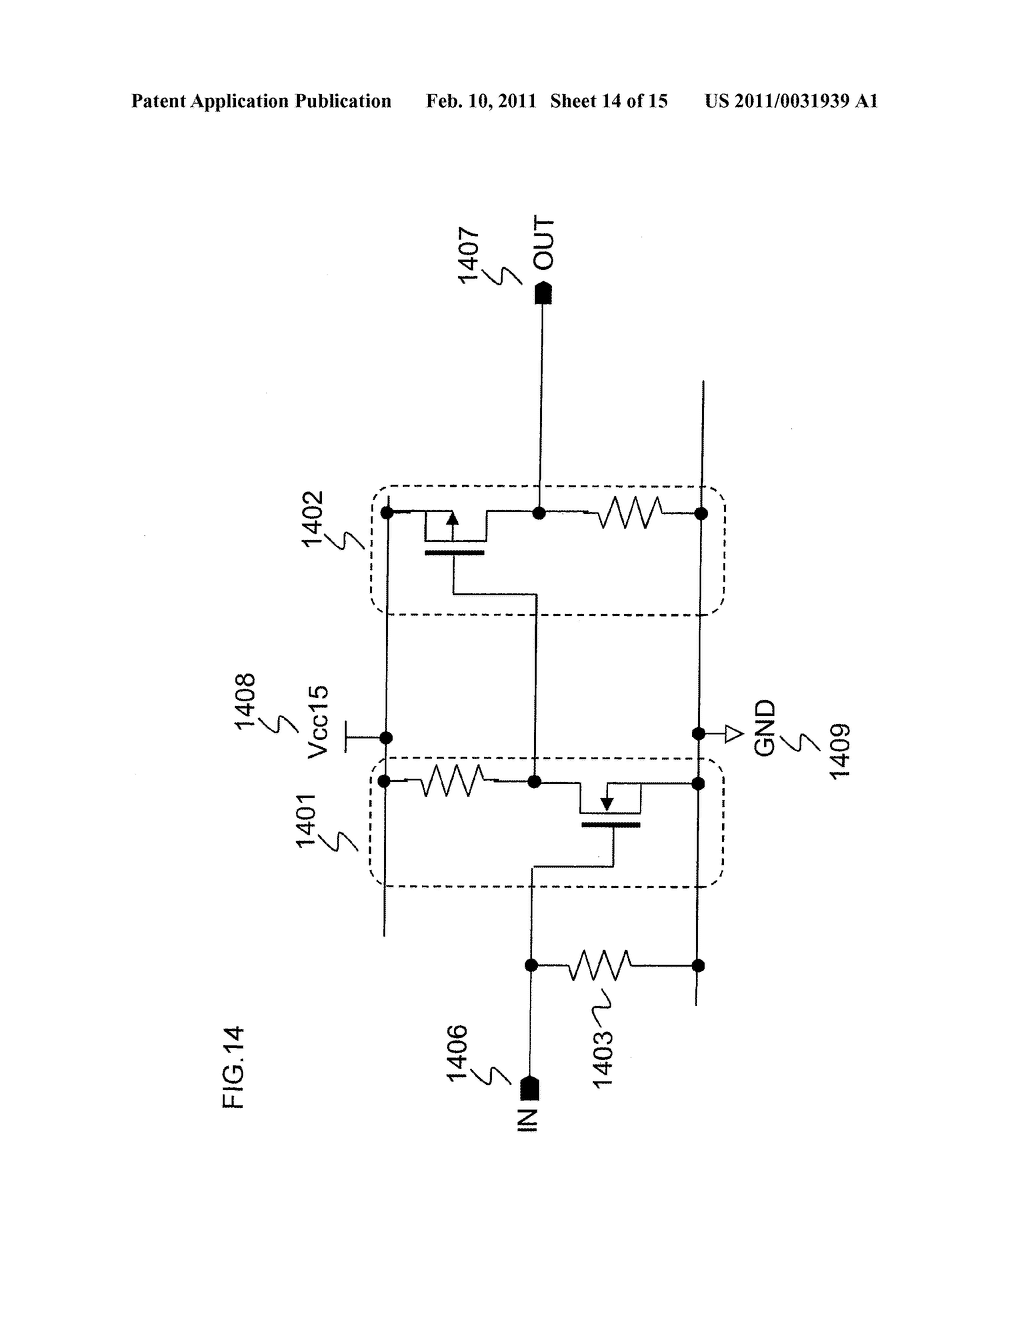 Discharge Circuit For Smoothing Capacitor Of Dc Power Supply Discharging Diagram Schematic And Image 15